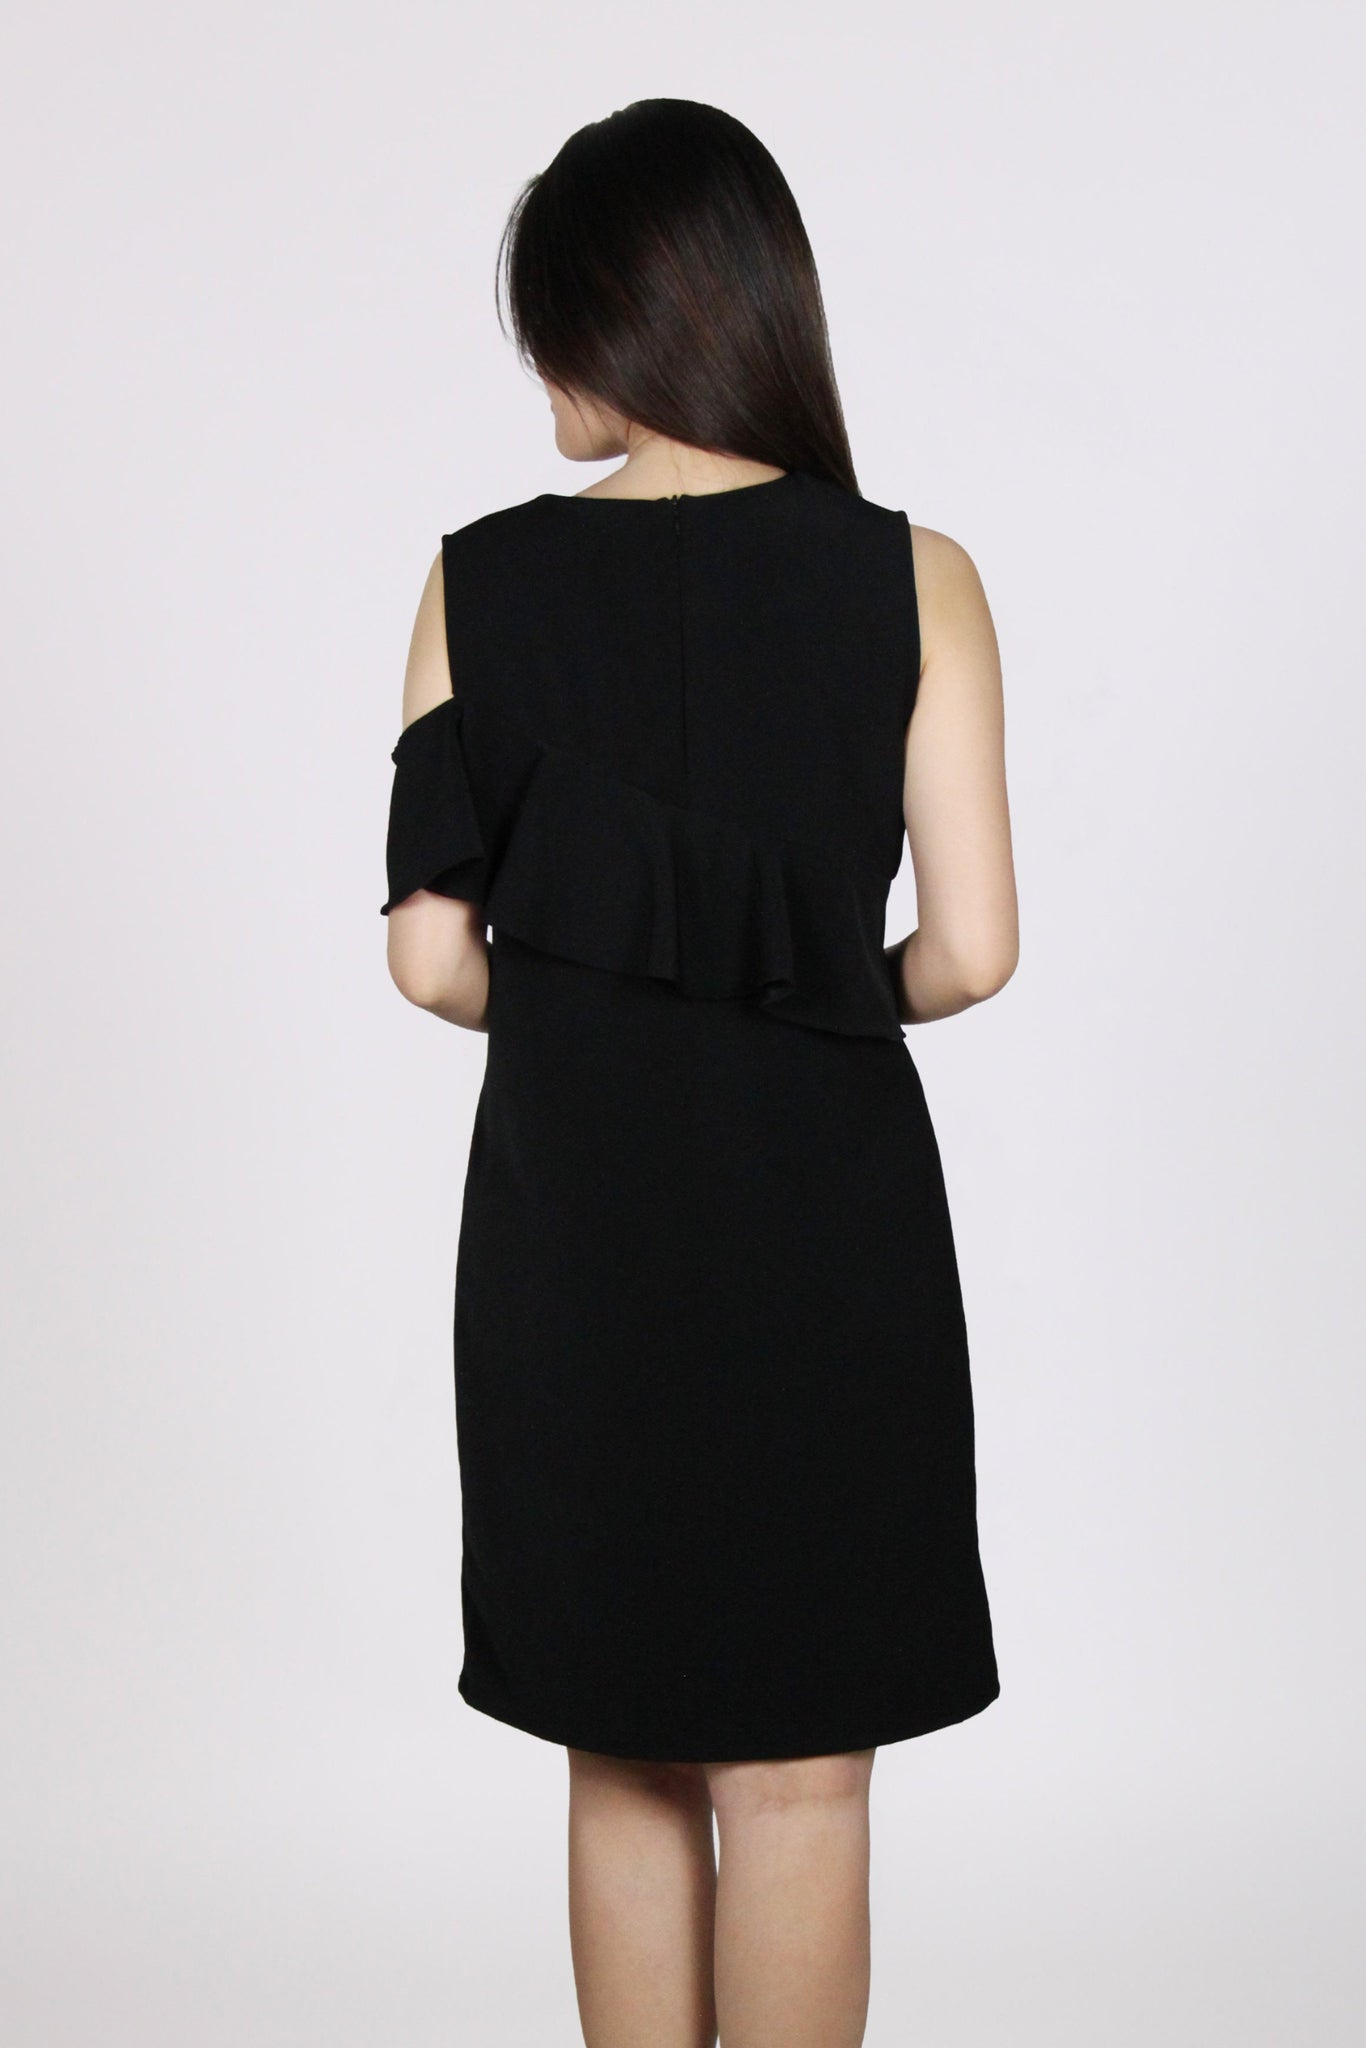 Single Cold Shoulder Ruffles Shift Dress in Black